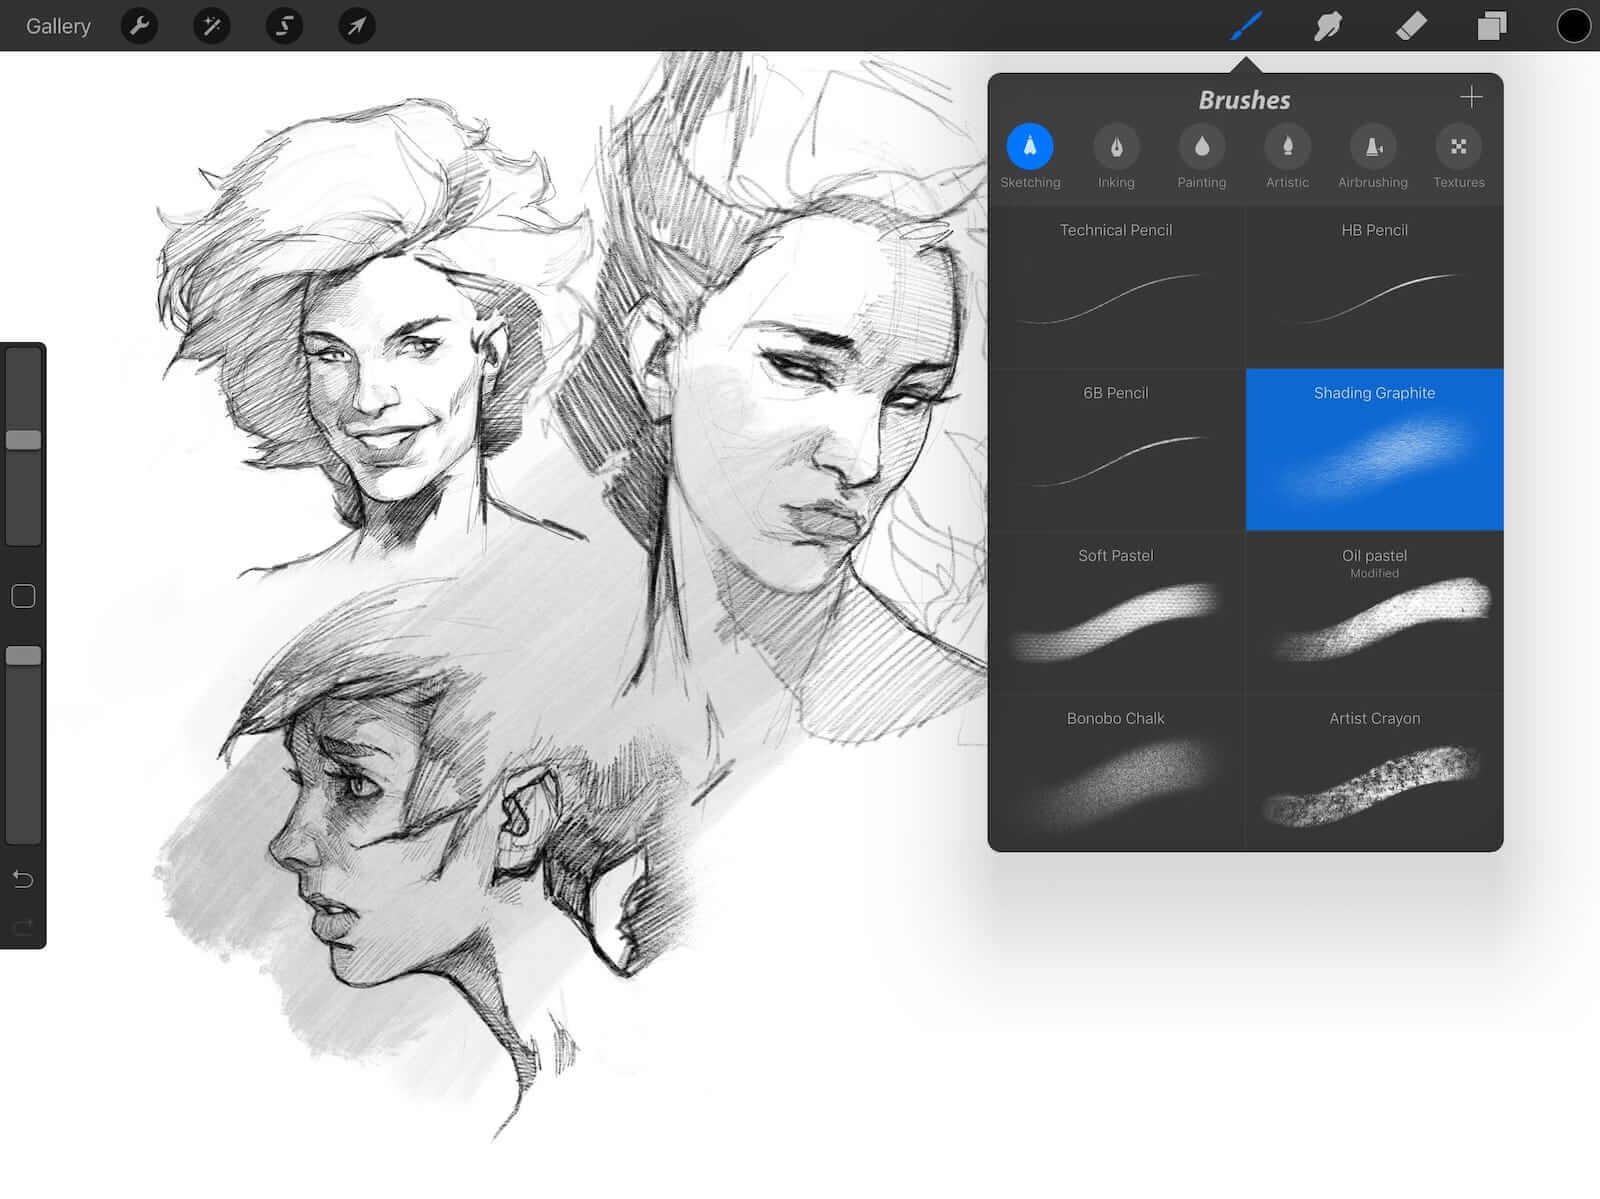 Best Storyboard Software - Procreate